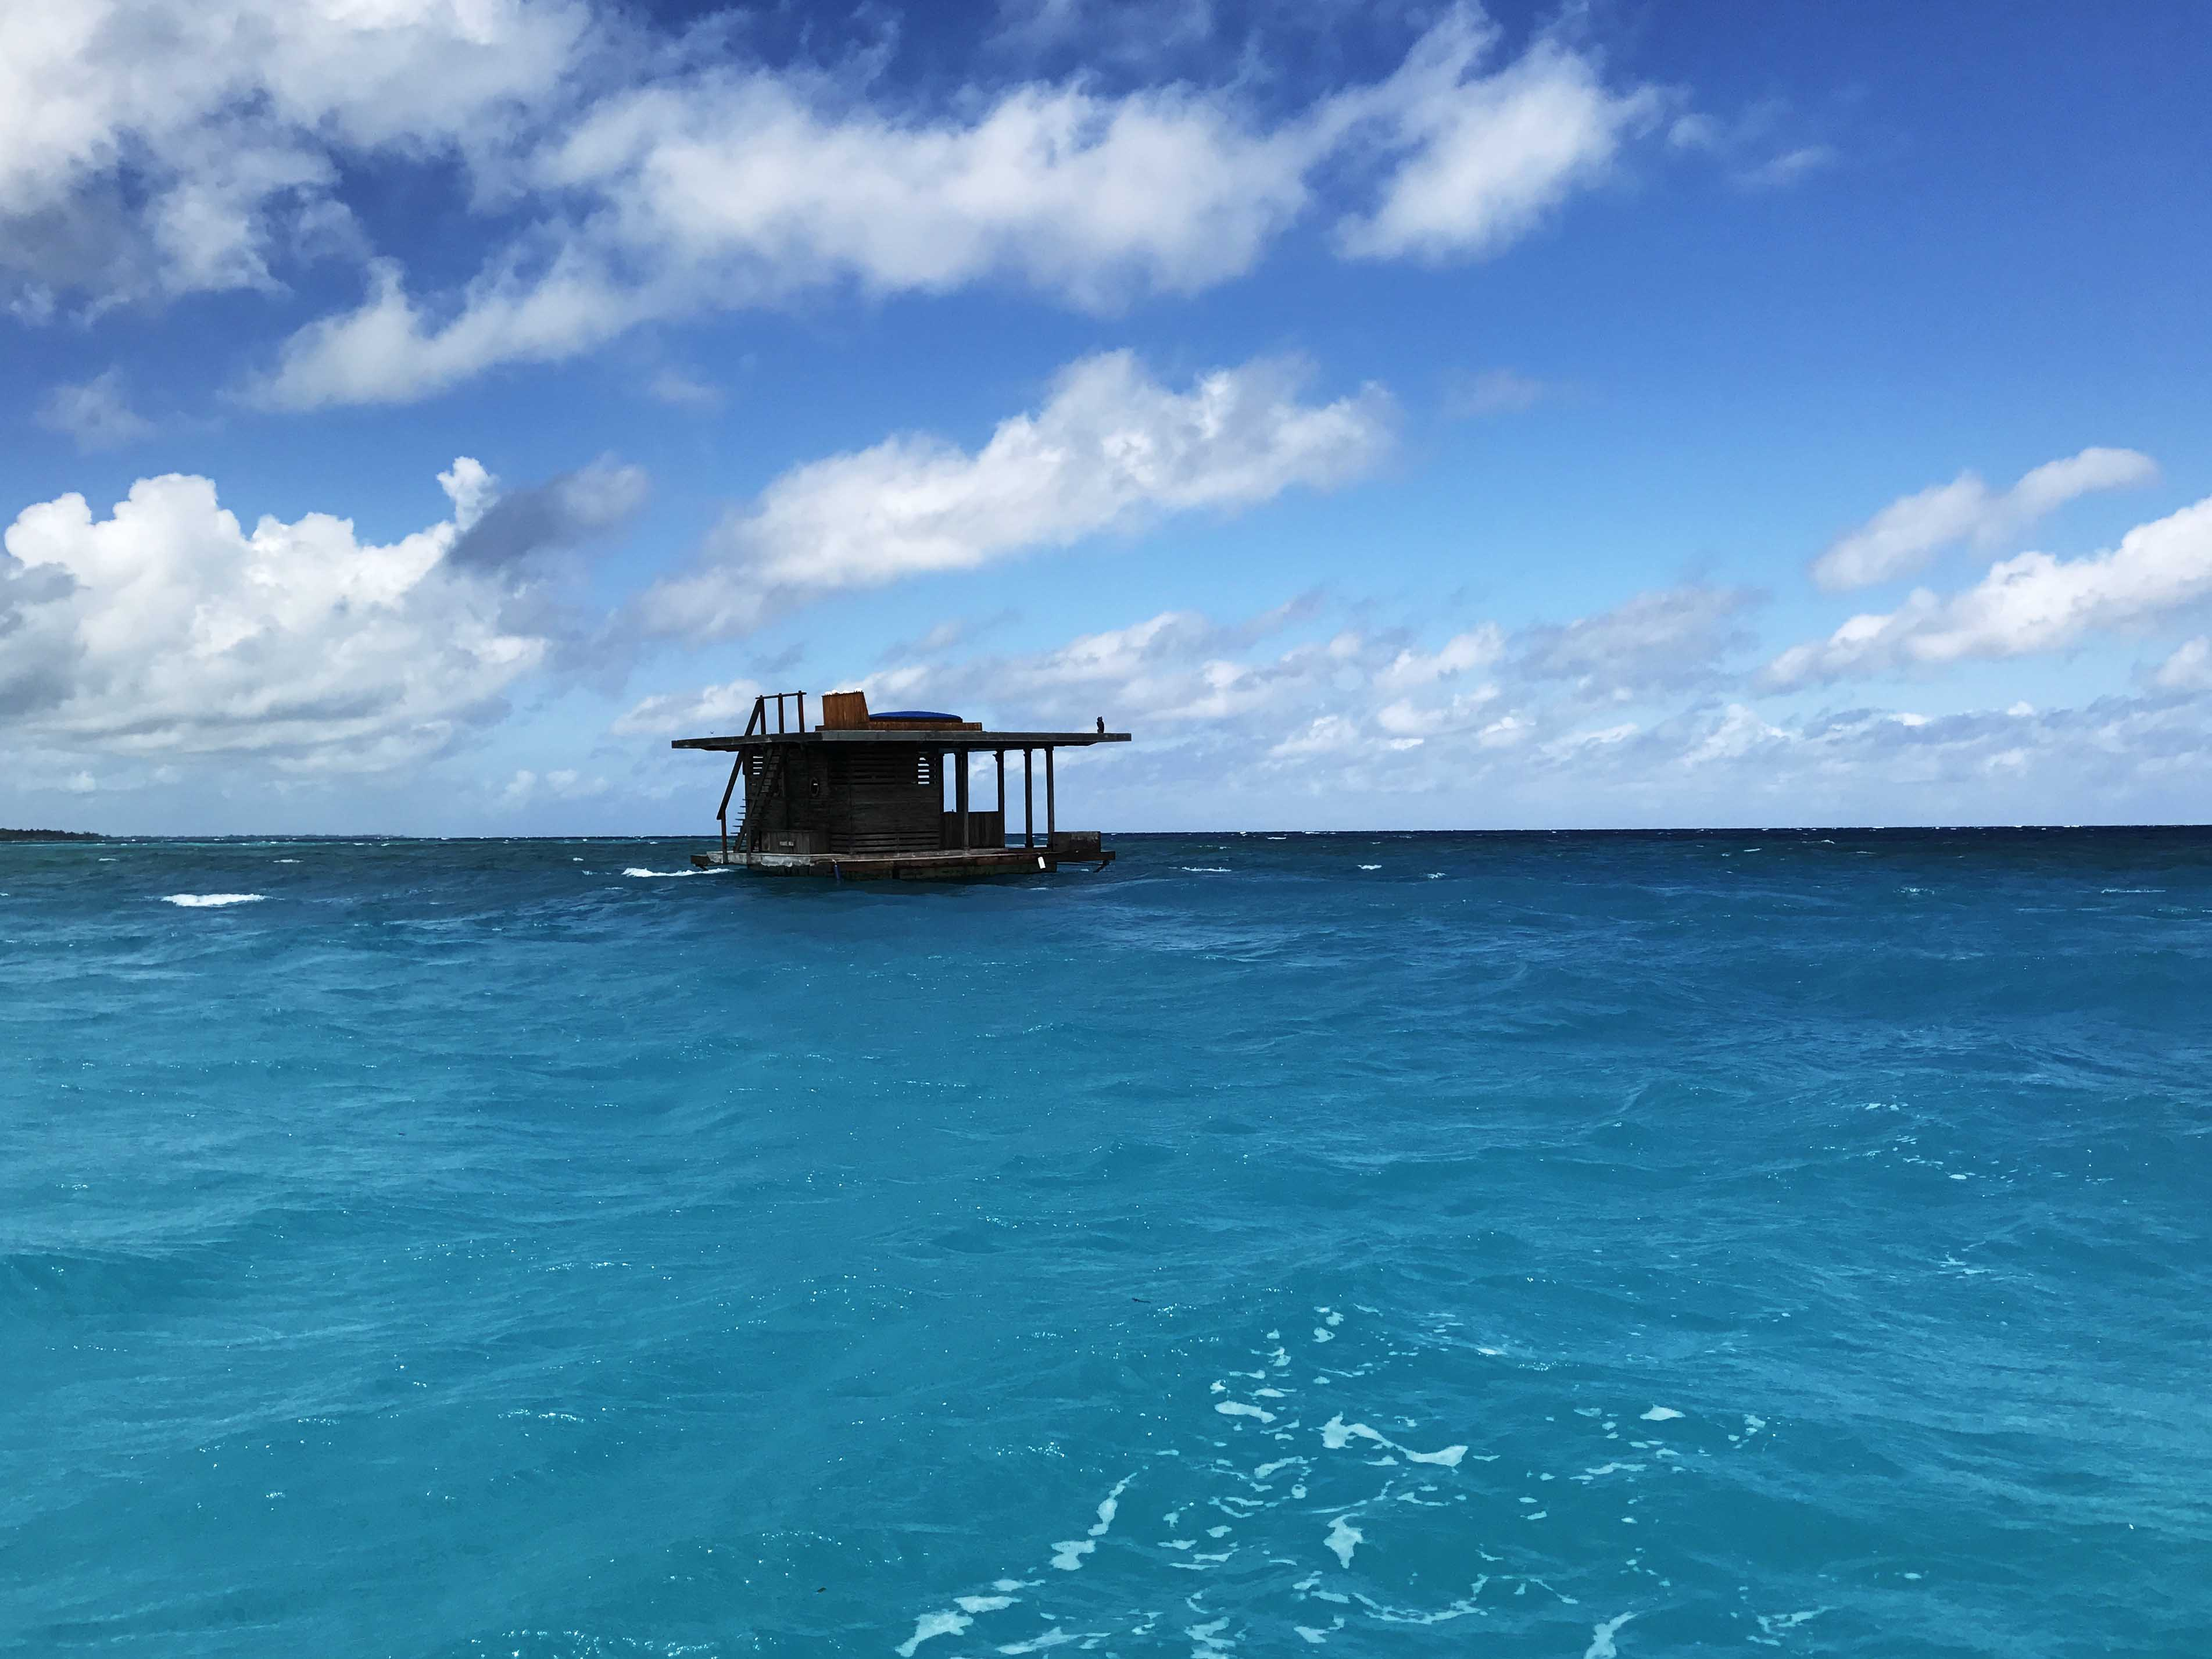 We Chose To Stay In An Ocean View Villa At The Resort For 6 Nights And  Spent One Night At The Underwater Room In The Floating Villa. On The Big  Day, ...